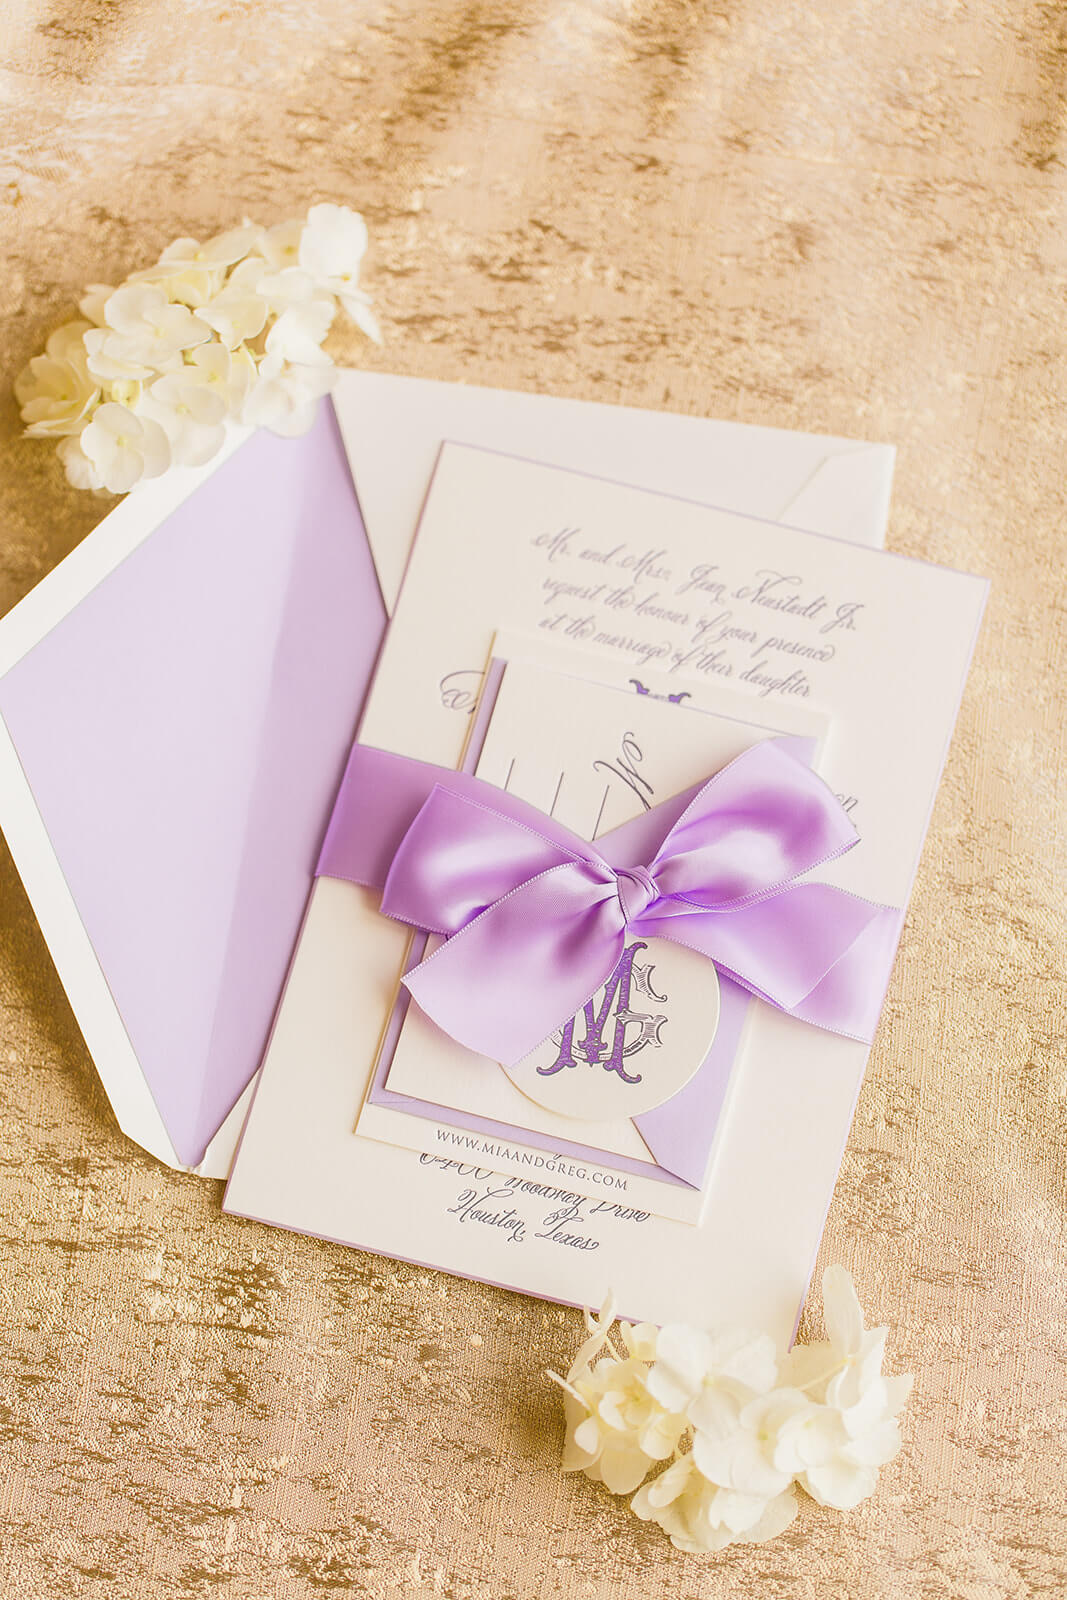 Lovely lavender letterpress wedding invitation with bow